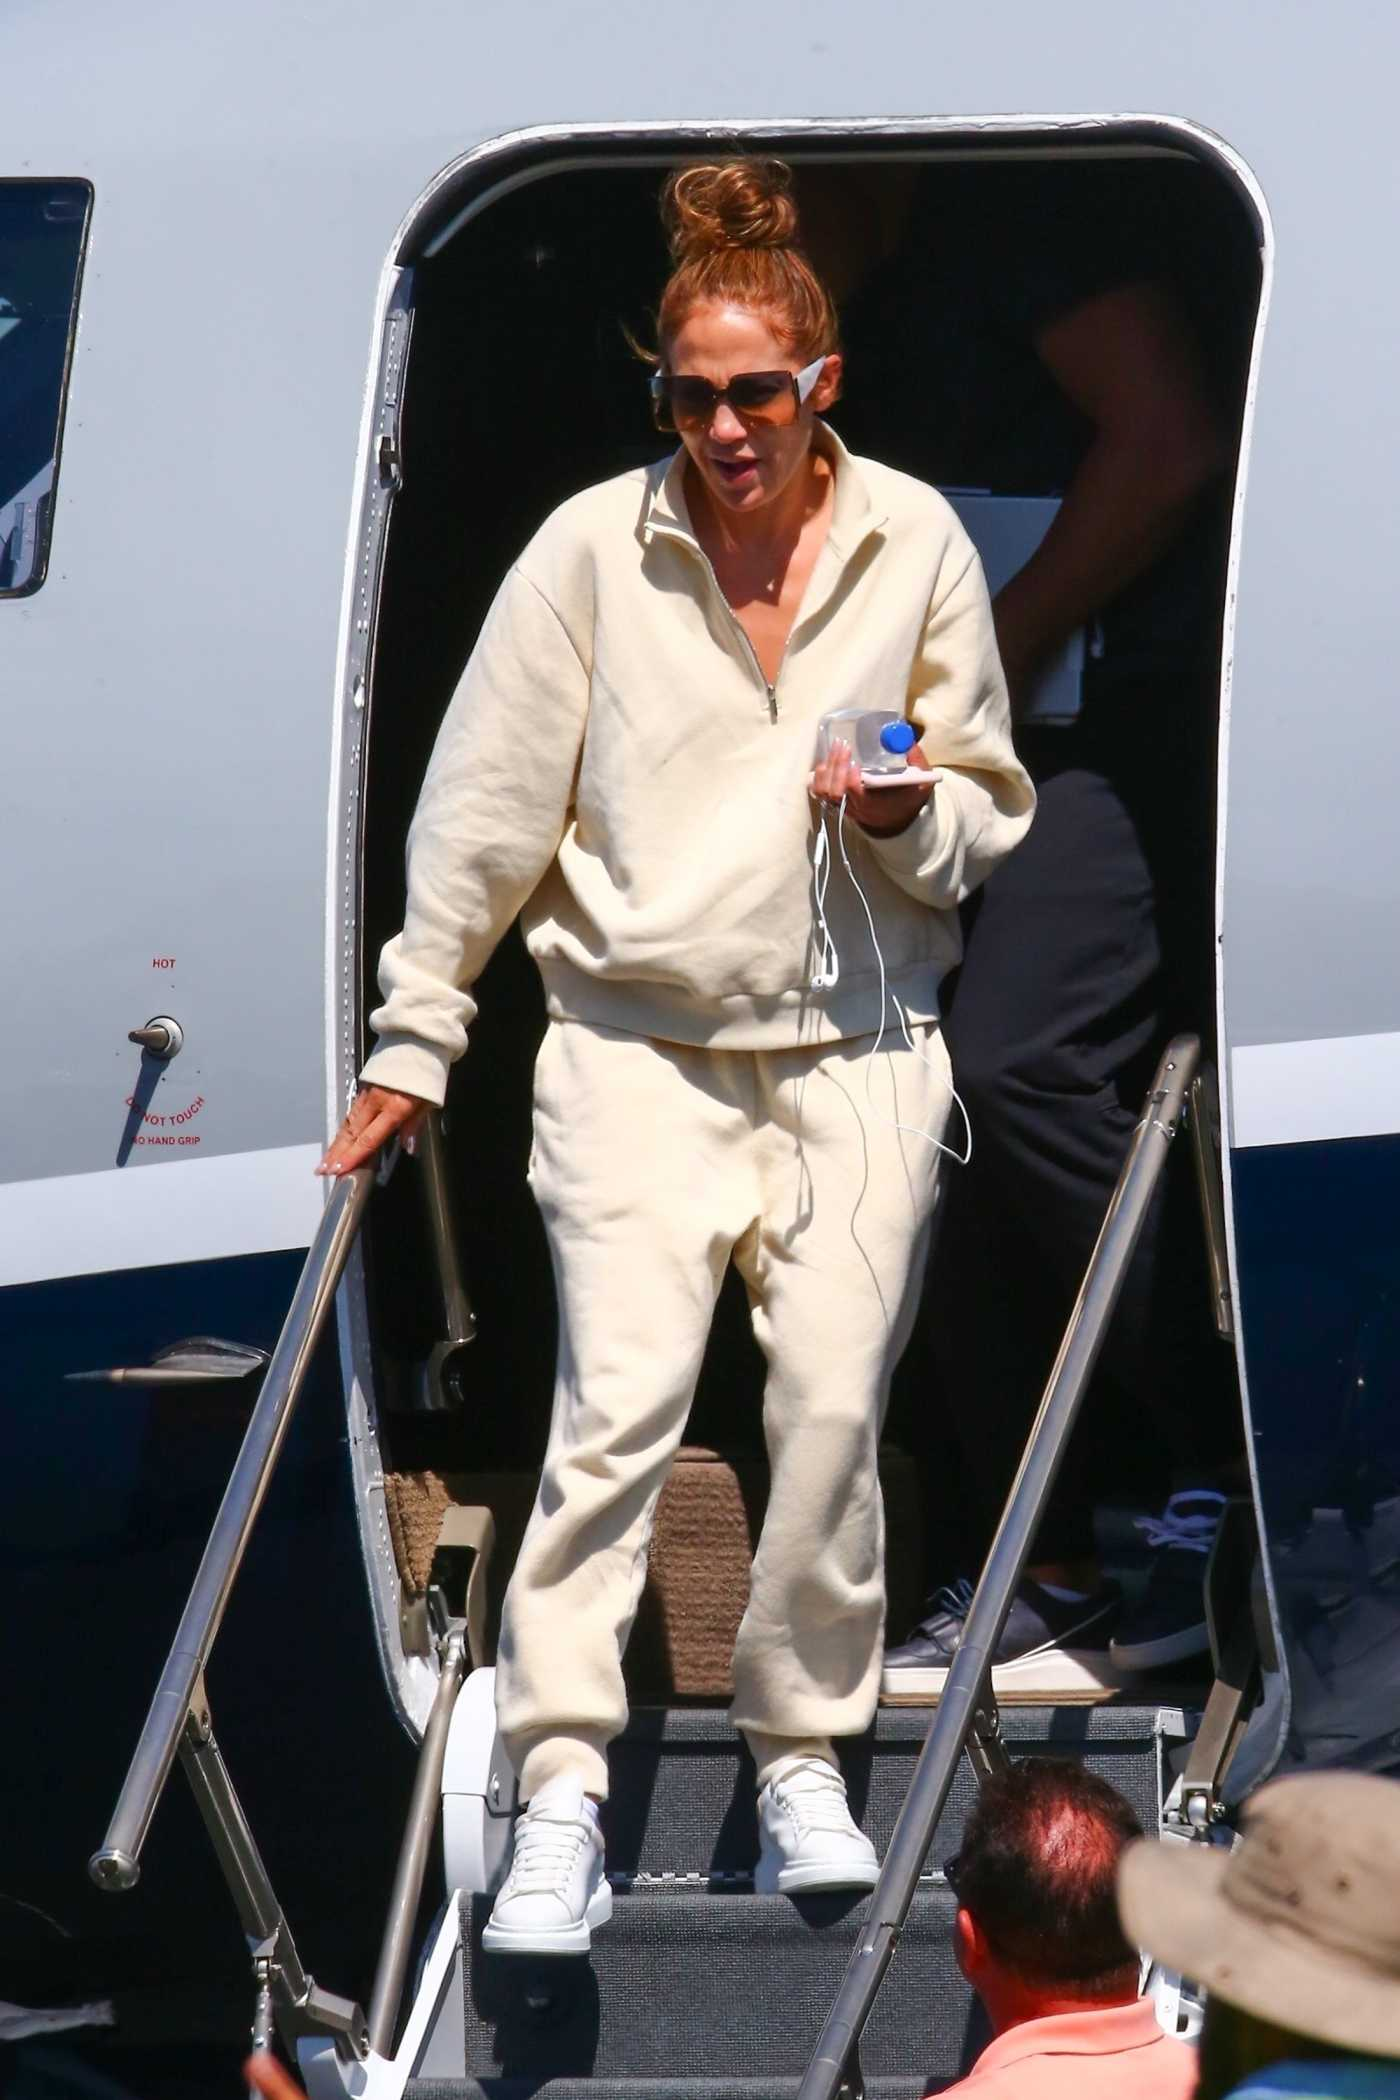 Jennifer Lopez in a Beige Jogging Suit Leaves Her Private Jet in Los Angeles 08/23/2019